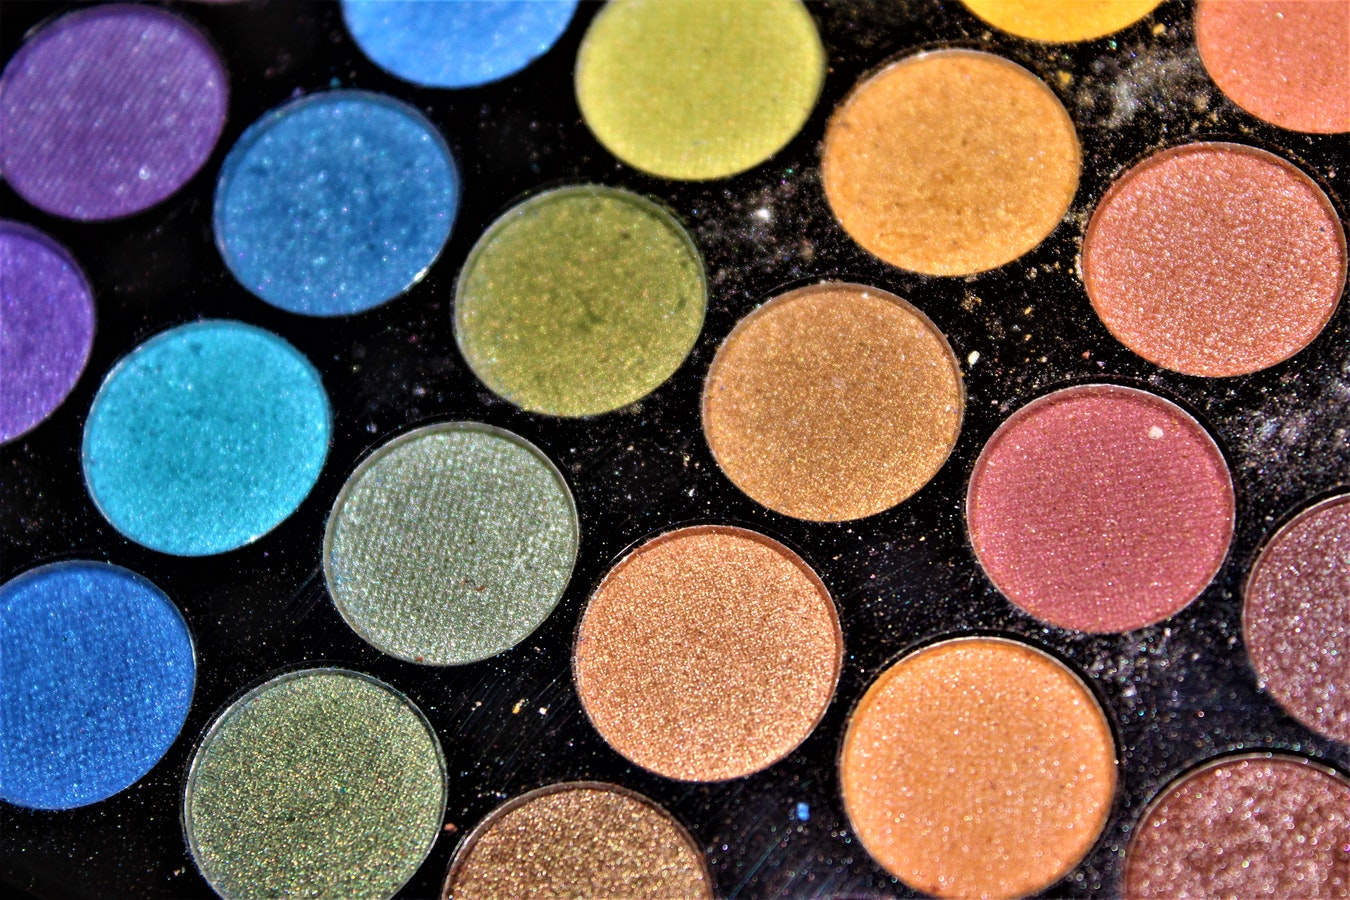 Unique designs for each eyeshadow palette